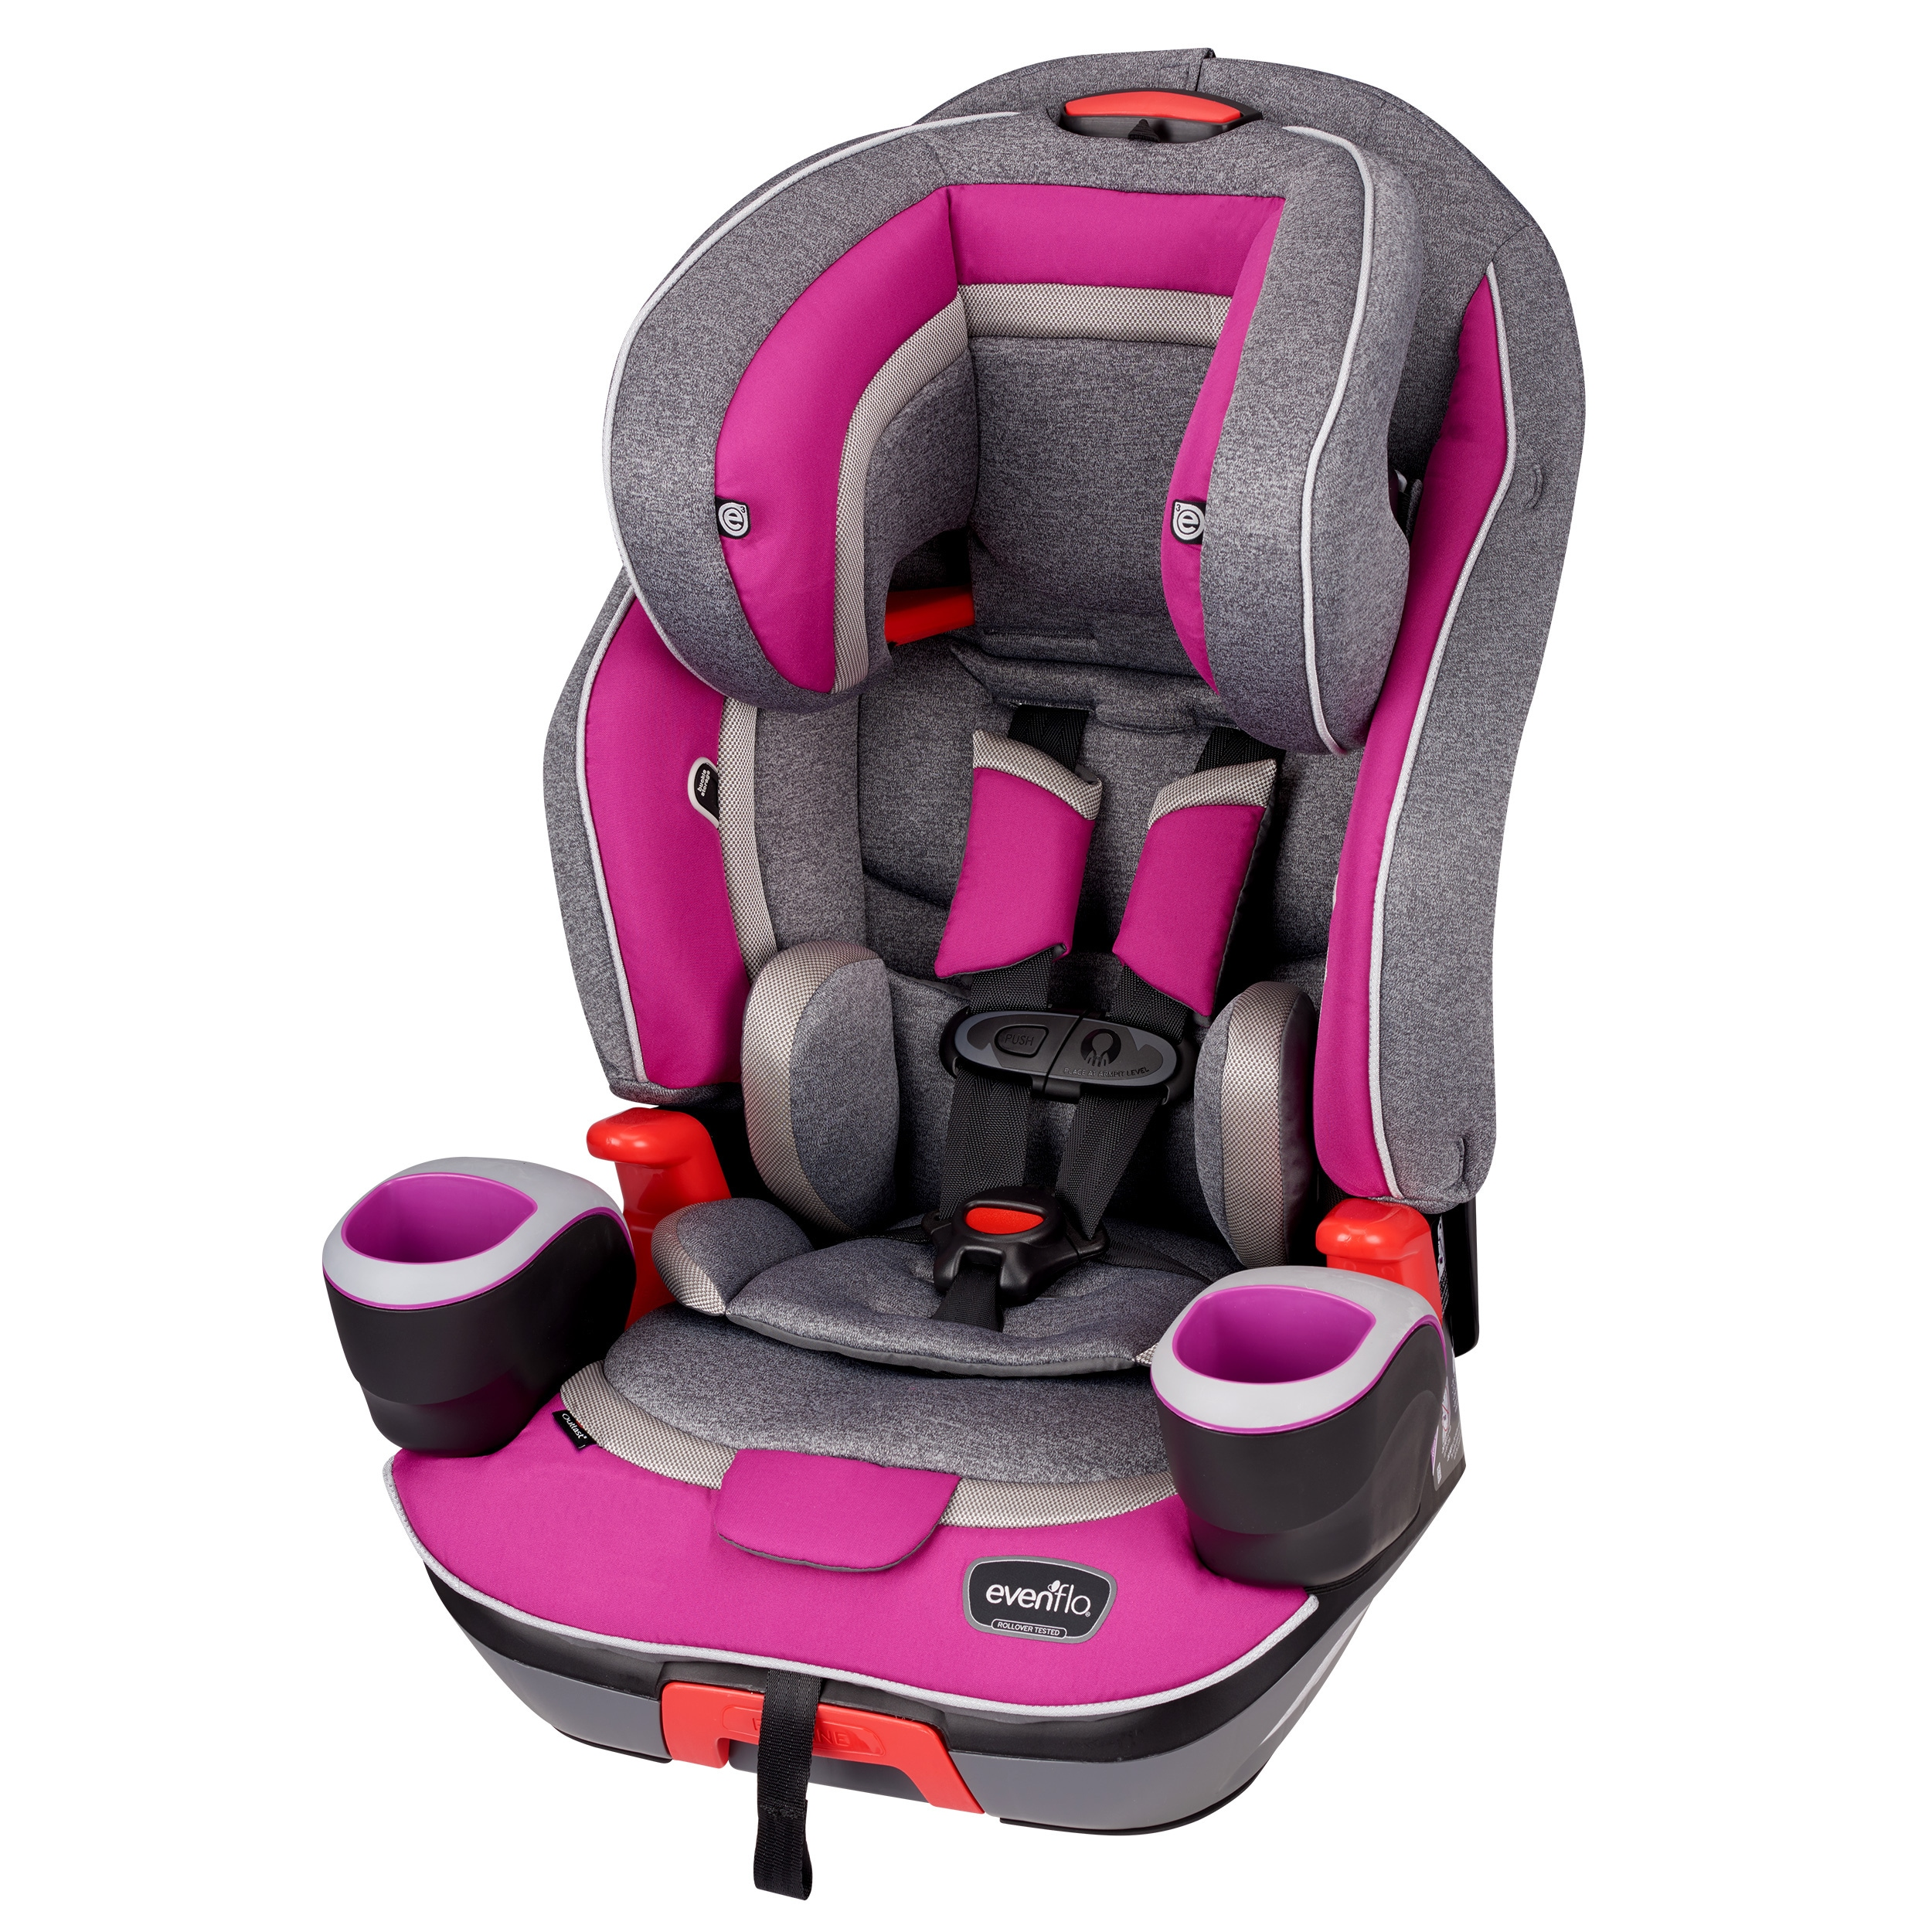 Evenflo Evolve 3 In 1 Combination Booster Car Seat Dreamer